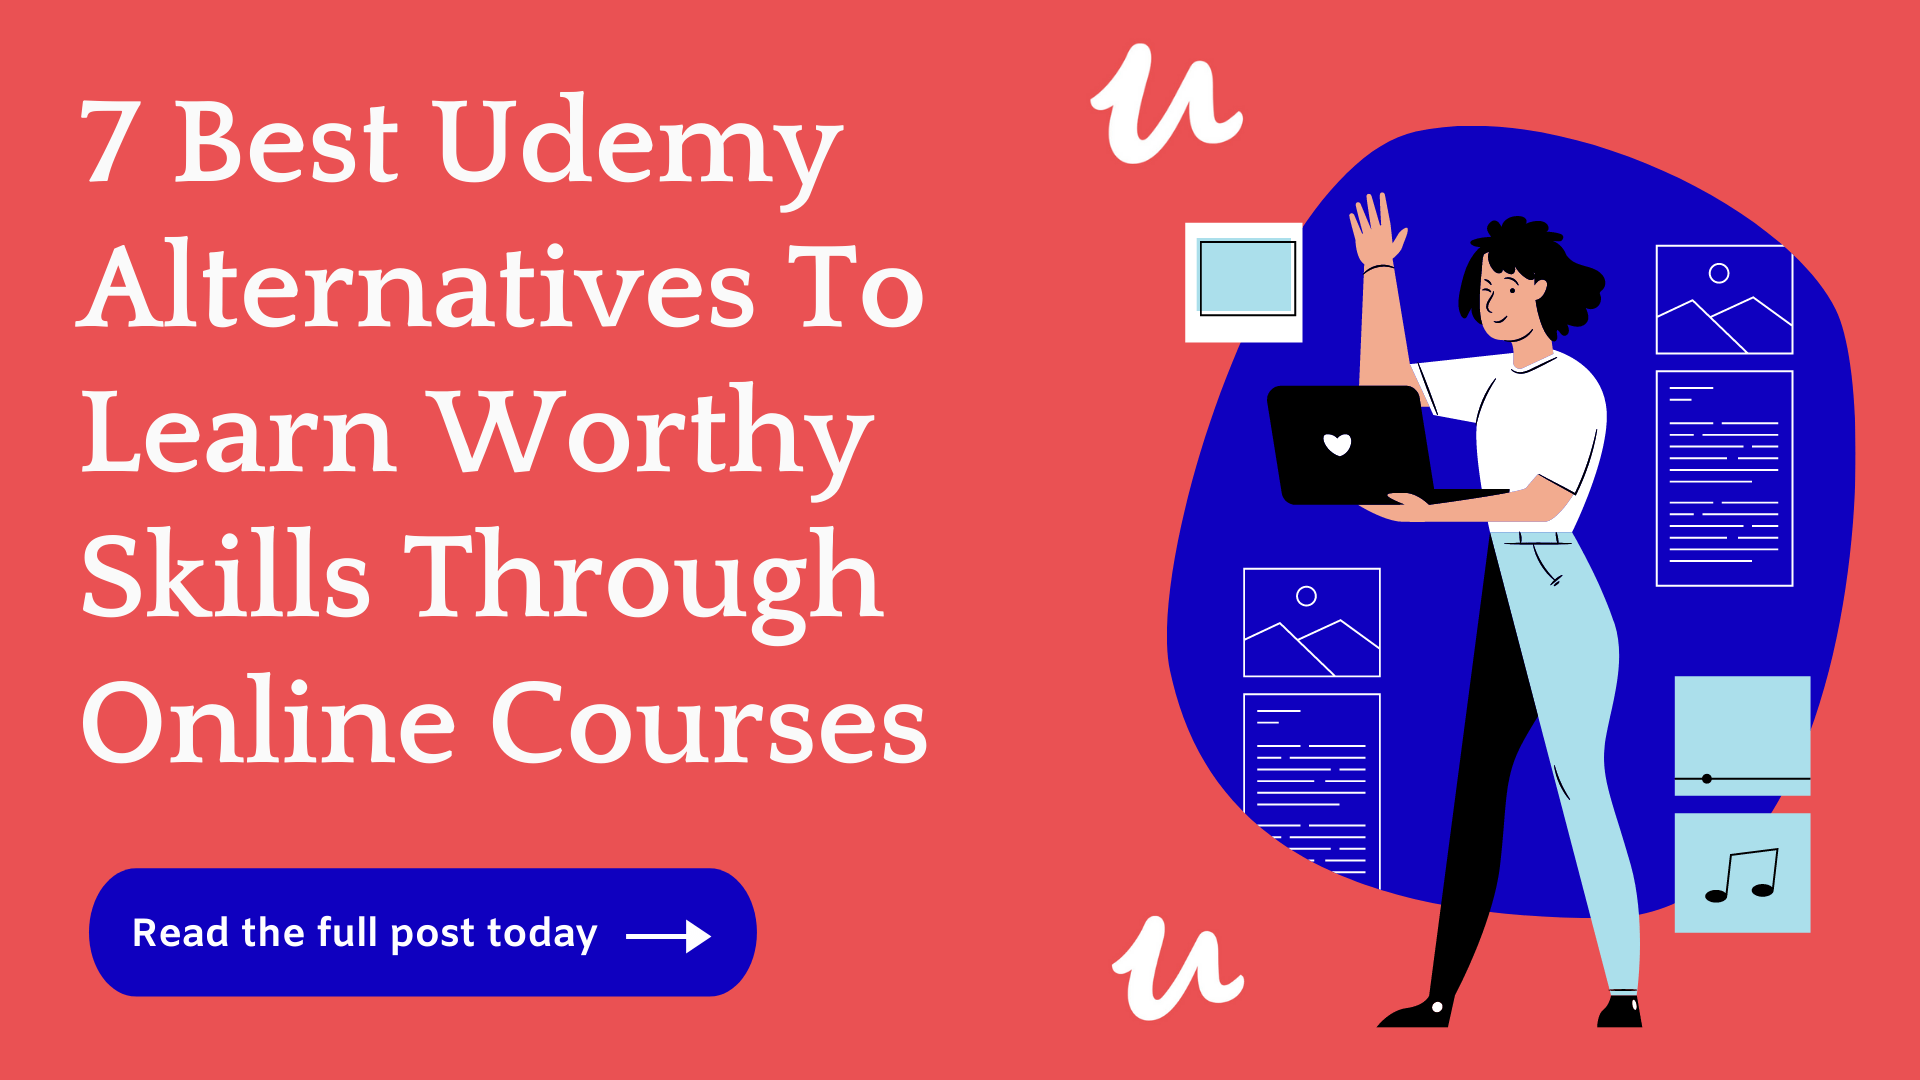 7 Best Udemy Alternatives For Online Courses